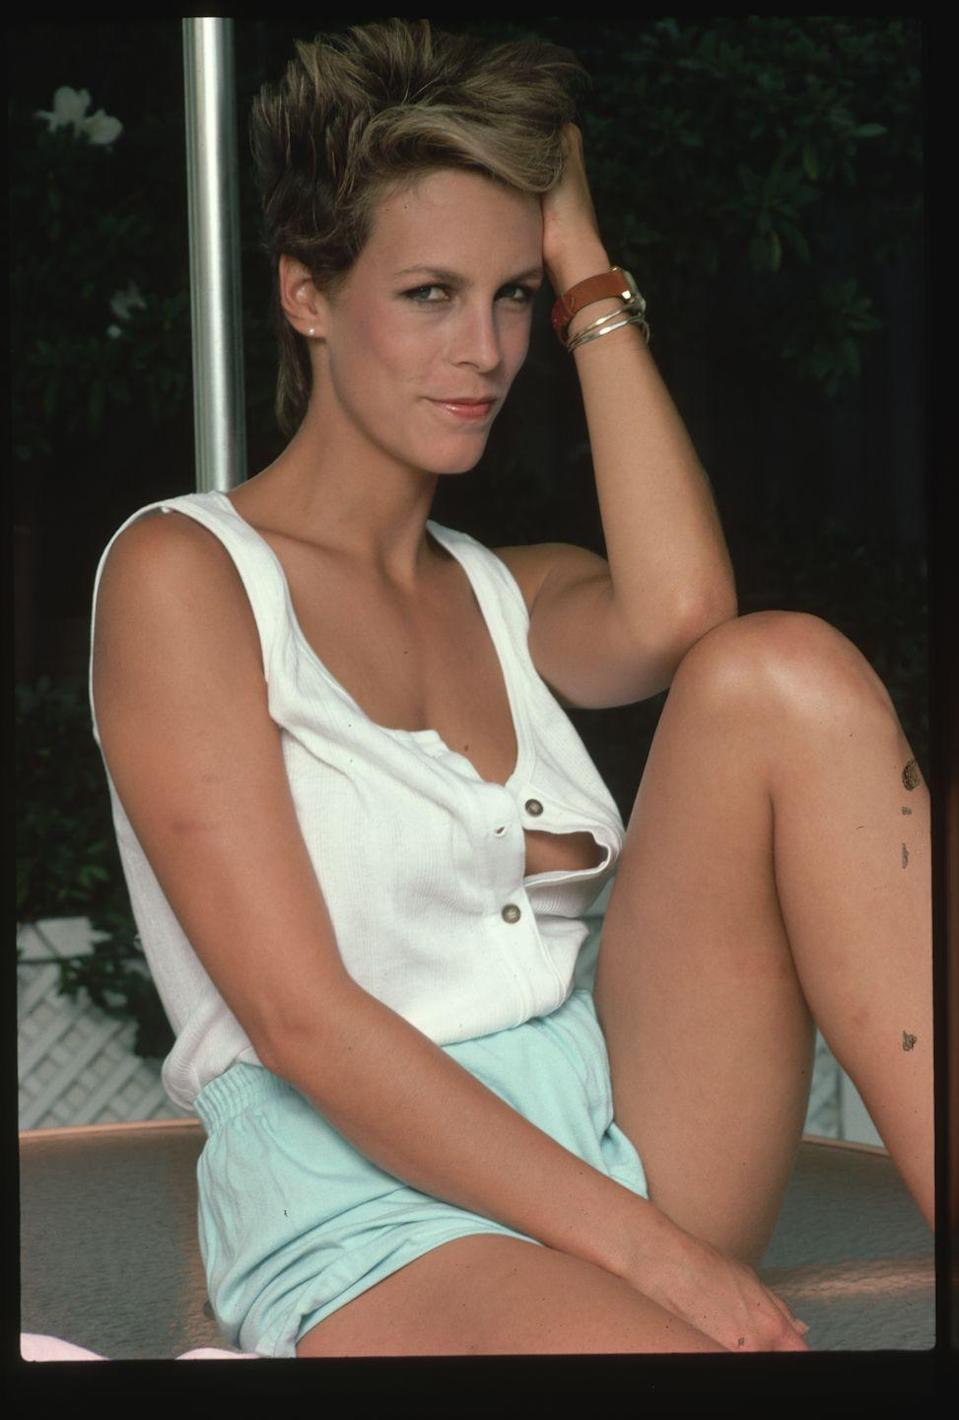 <p>Jamie Lee Curtis poses in a pair of turquoise athletic shirts and a white tank top. The actress, who rose to fame in the horror film <em>Halloween</em>, had just starred in <em>A Fish Called Wanda</em>. </p>